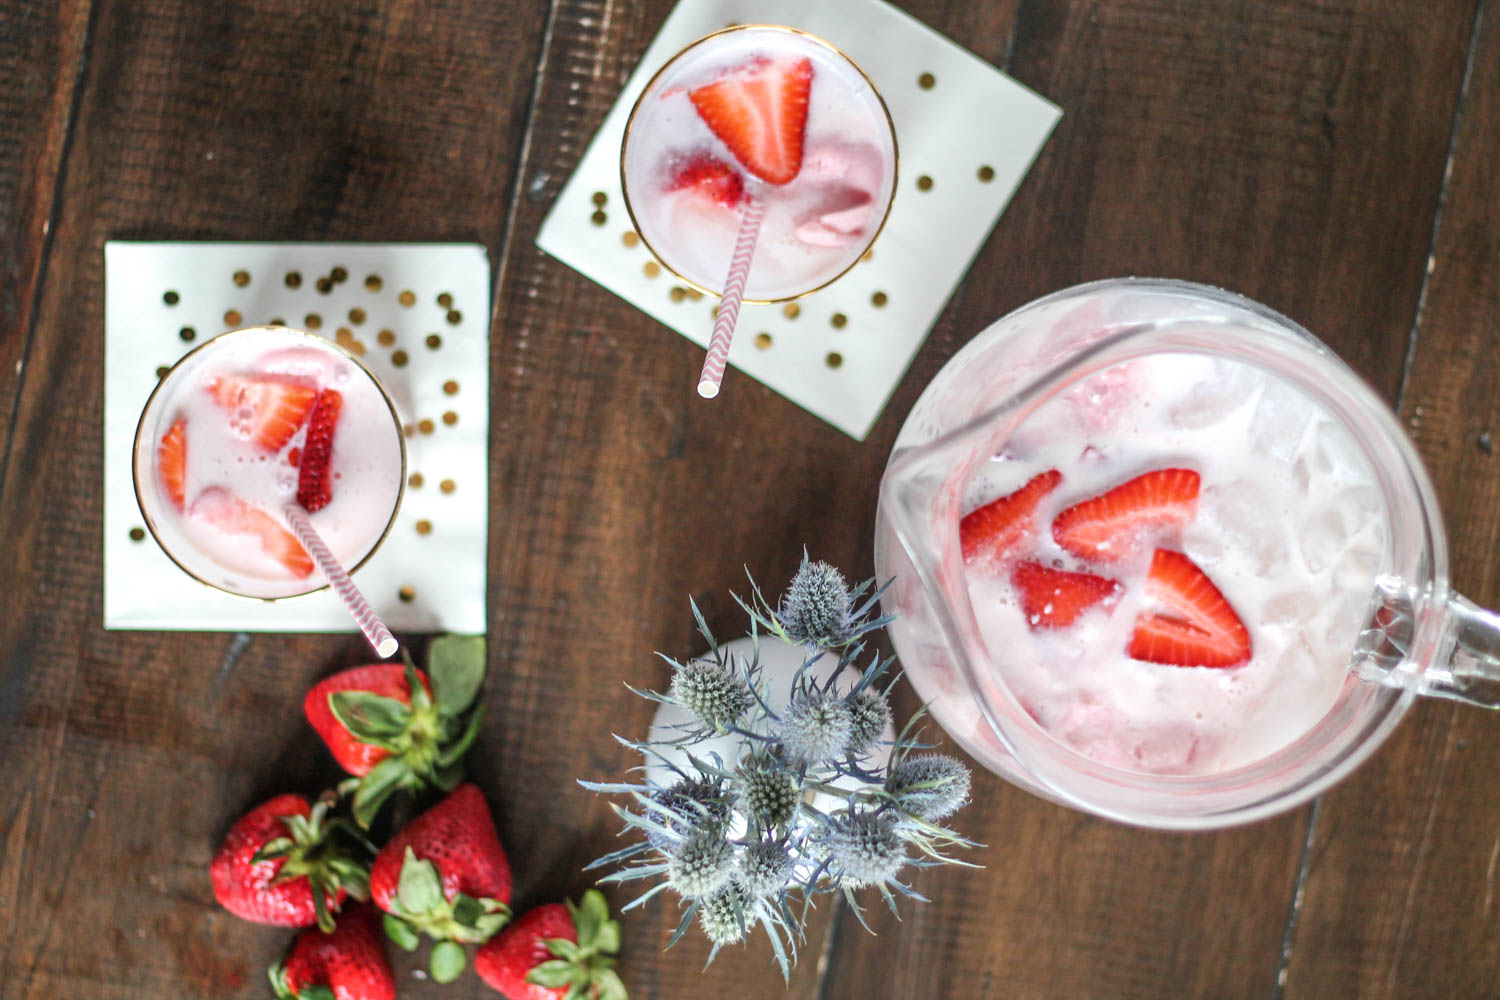 strawberry-white-wine-cocktail-with-halo-top-ice-cream-5